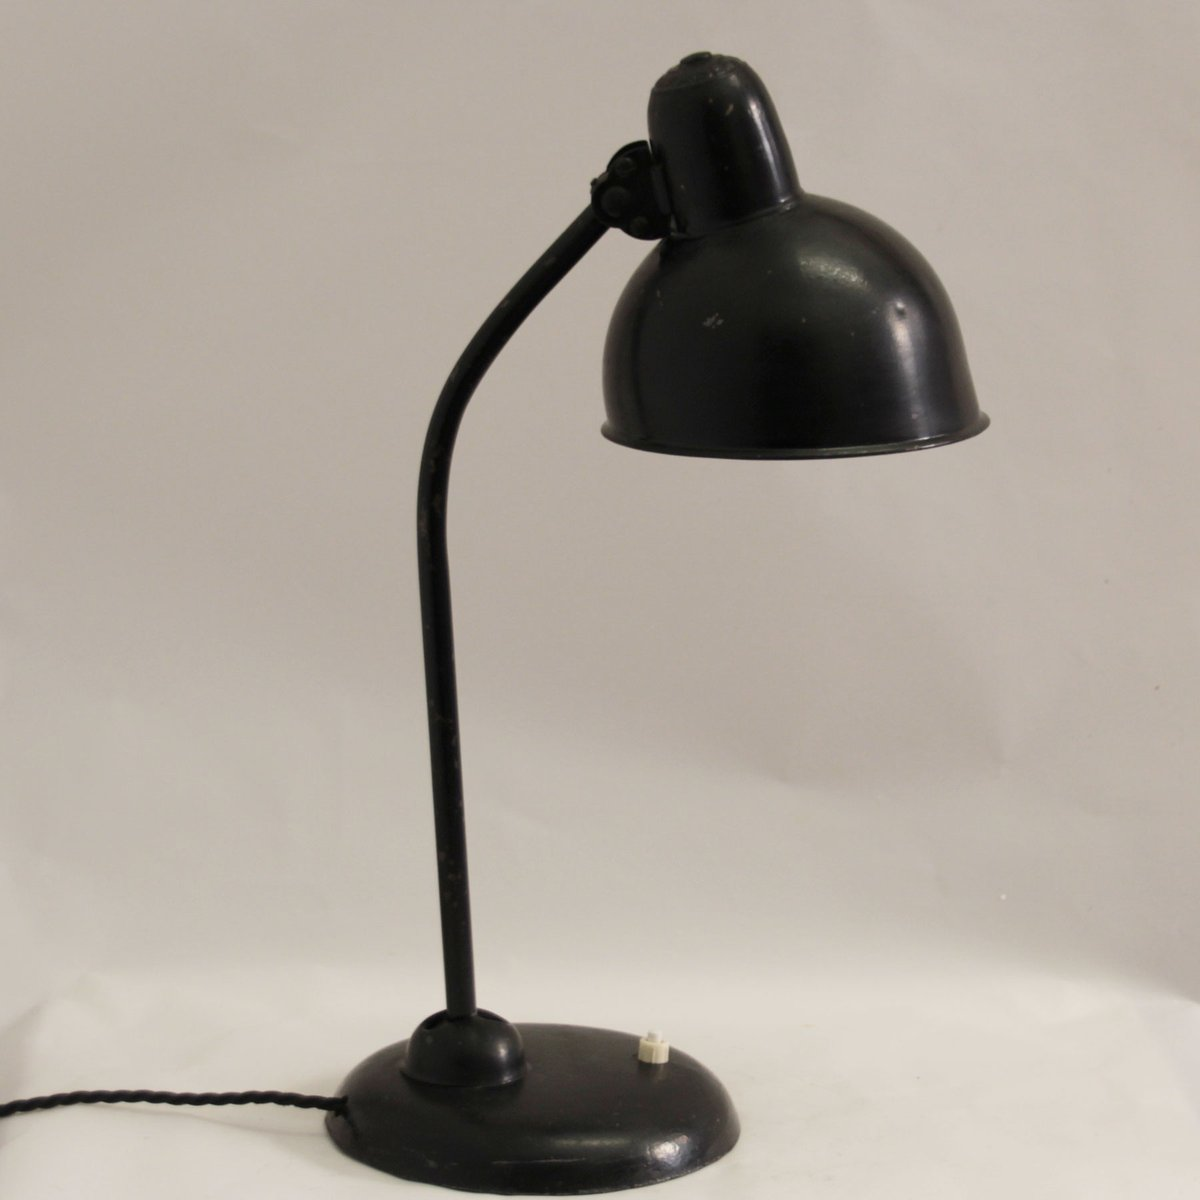 Model 6551 Bauhaus Table Lamp By Christian Dell For Kaiser